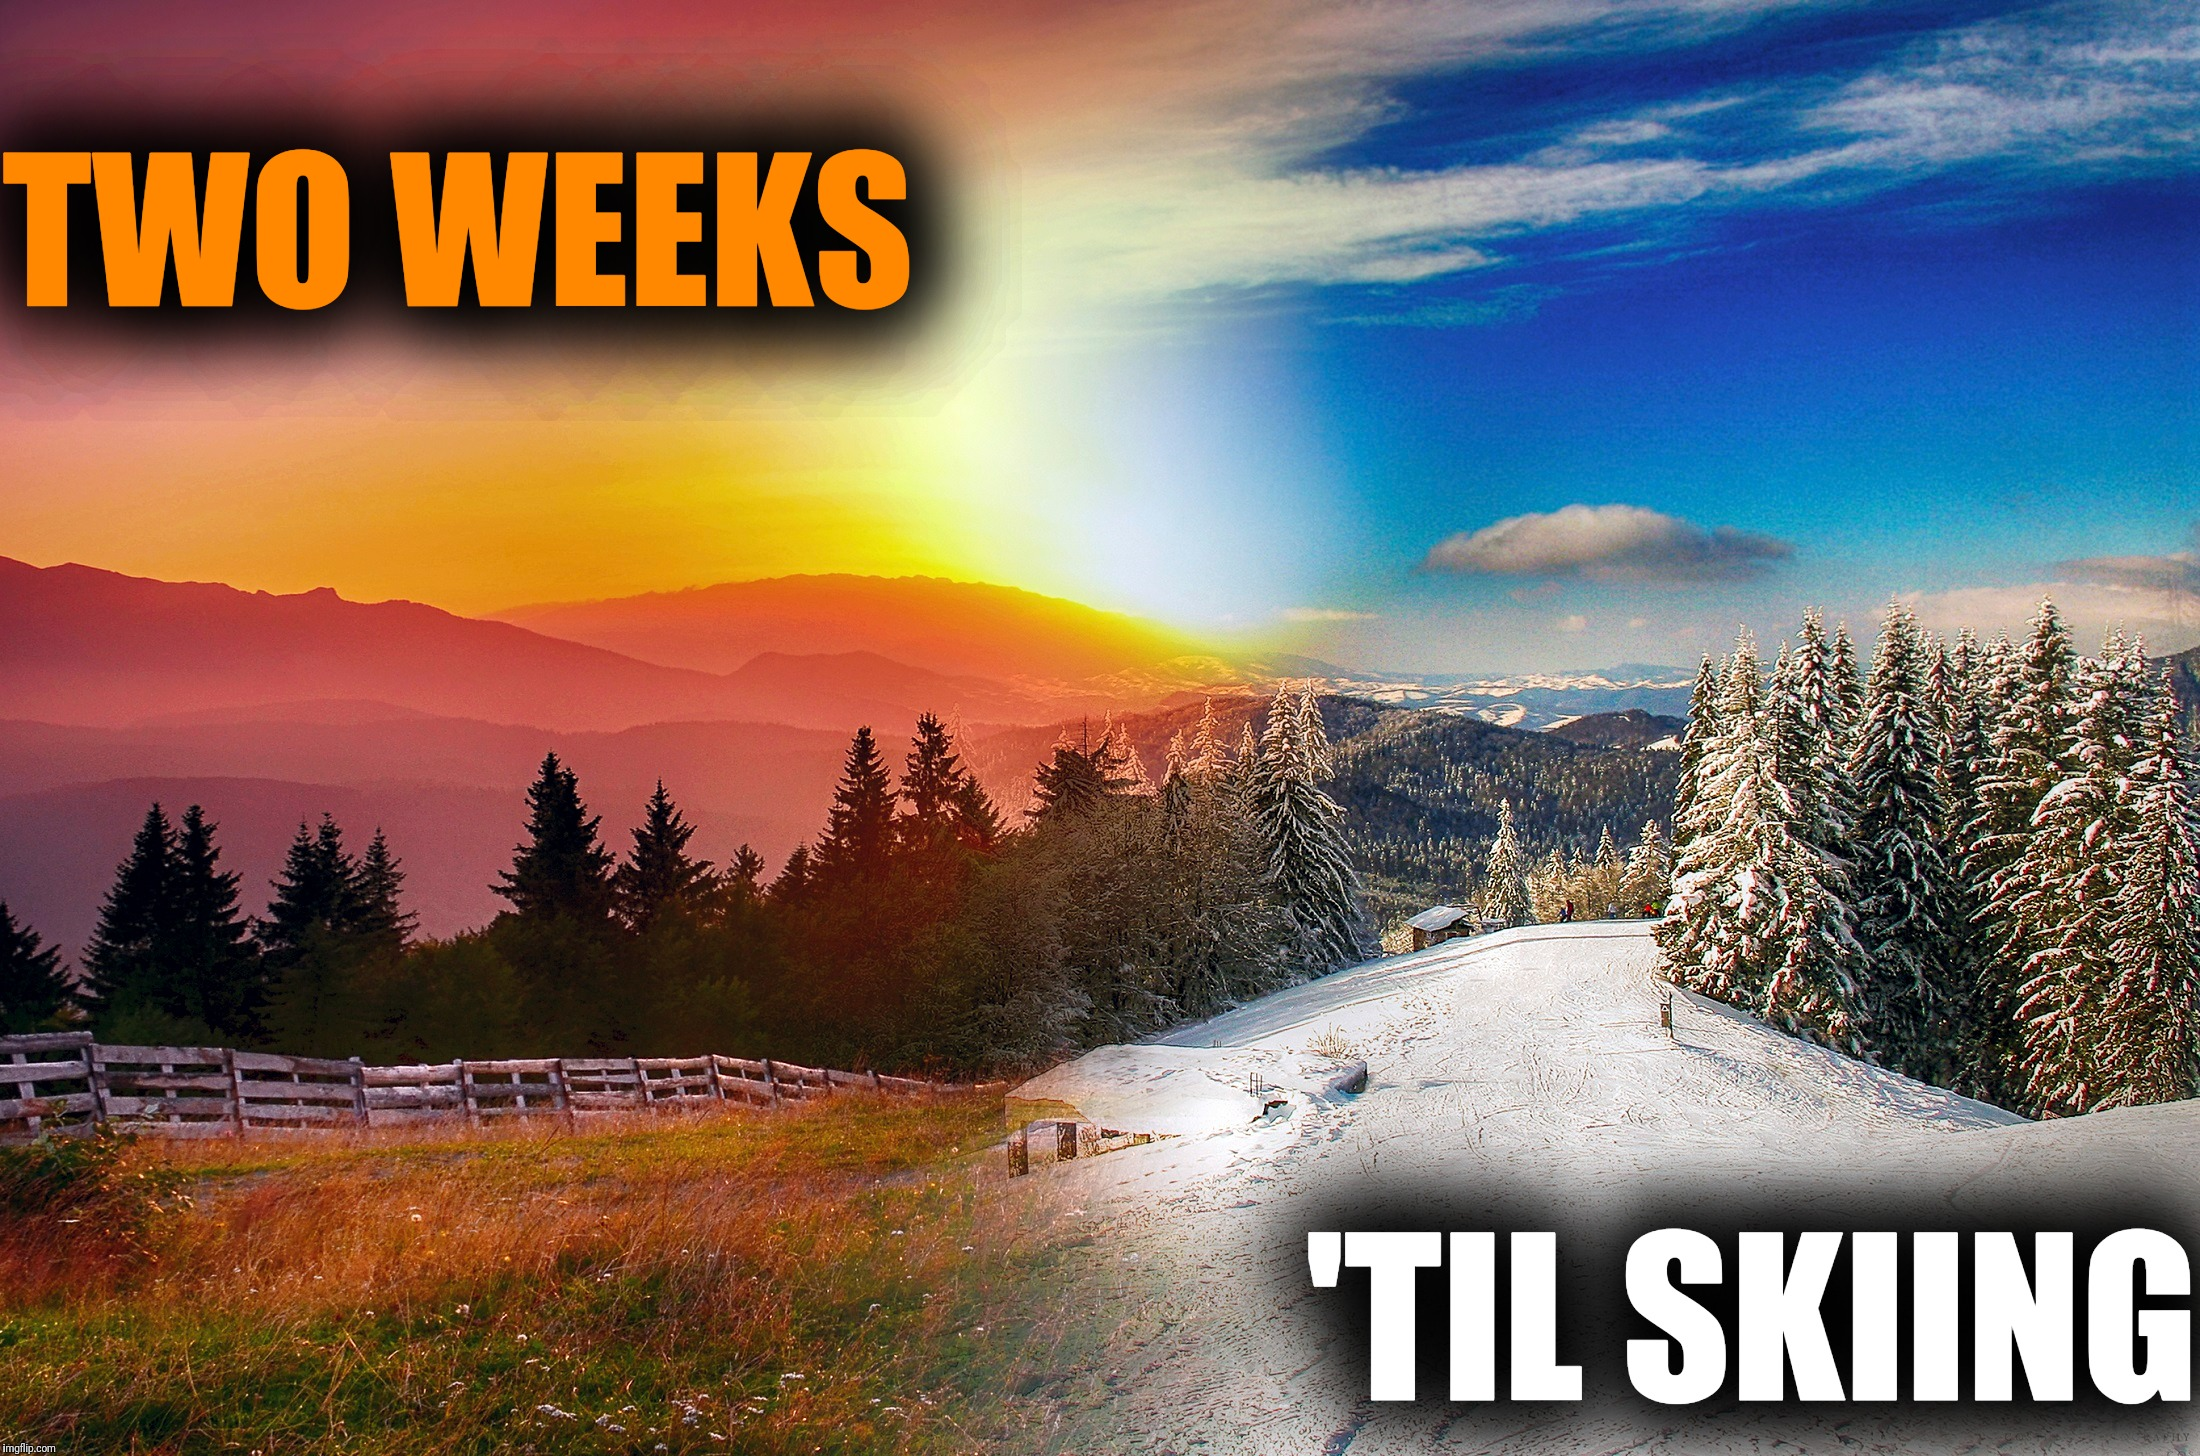 TWO WEEKS 'TIL SKIING | made w/ Imgflip meme maker